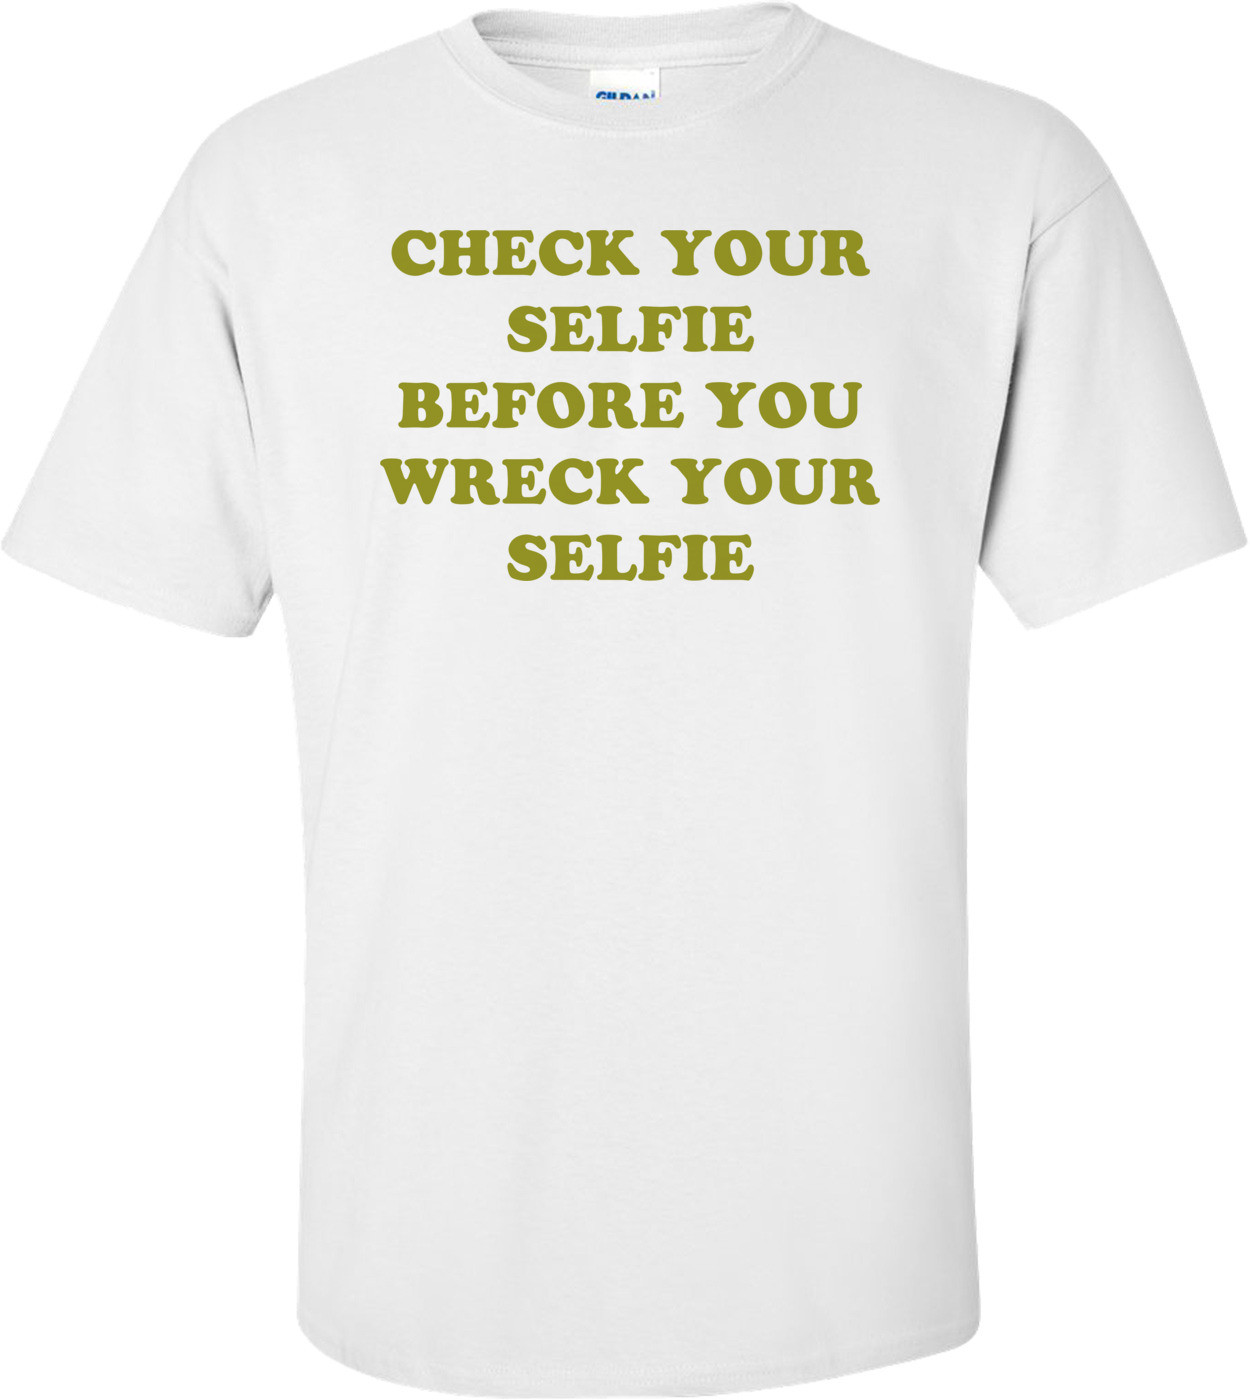 CHECK YOUR SELFIE BEFORE YOU WRECK YOUR SELFIE Shirt